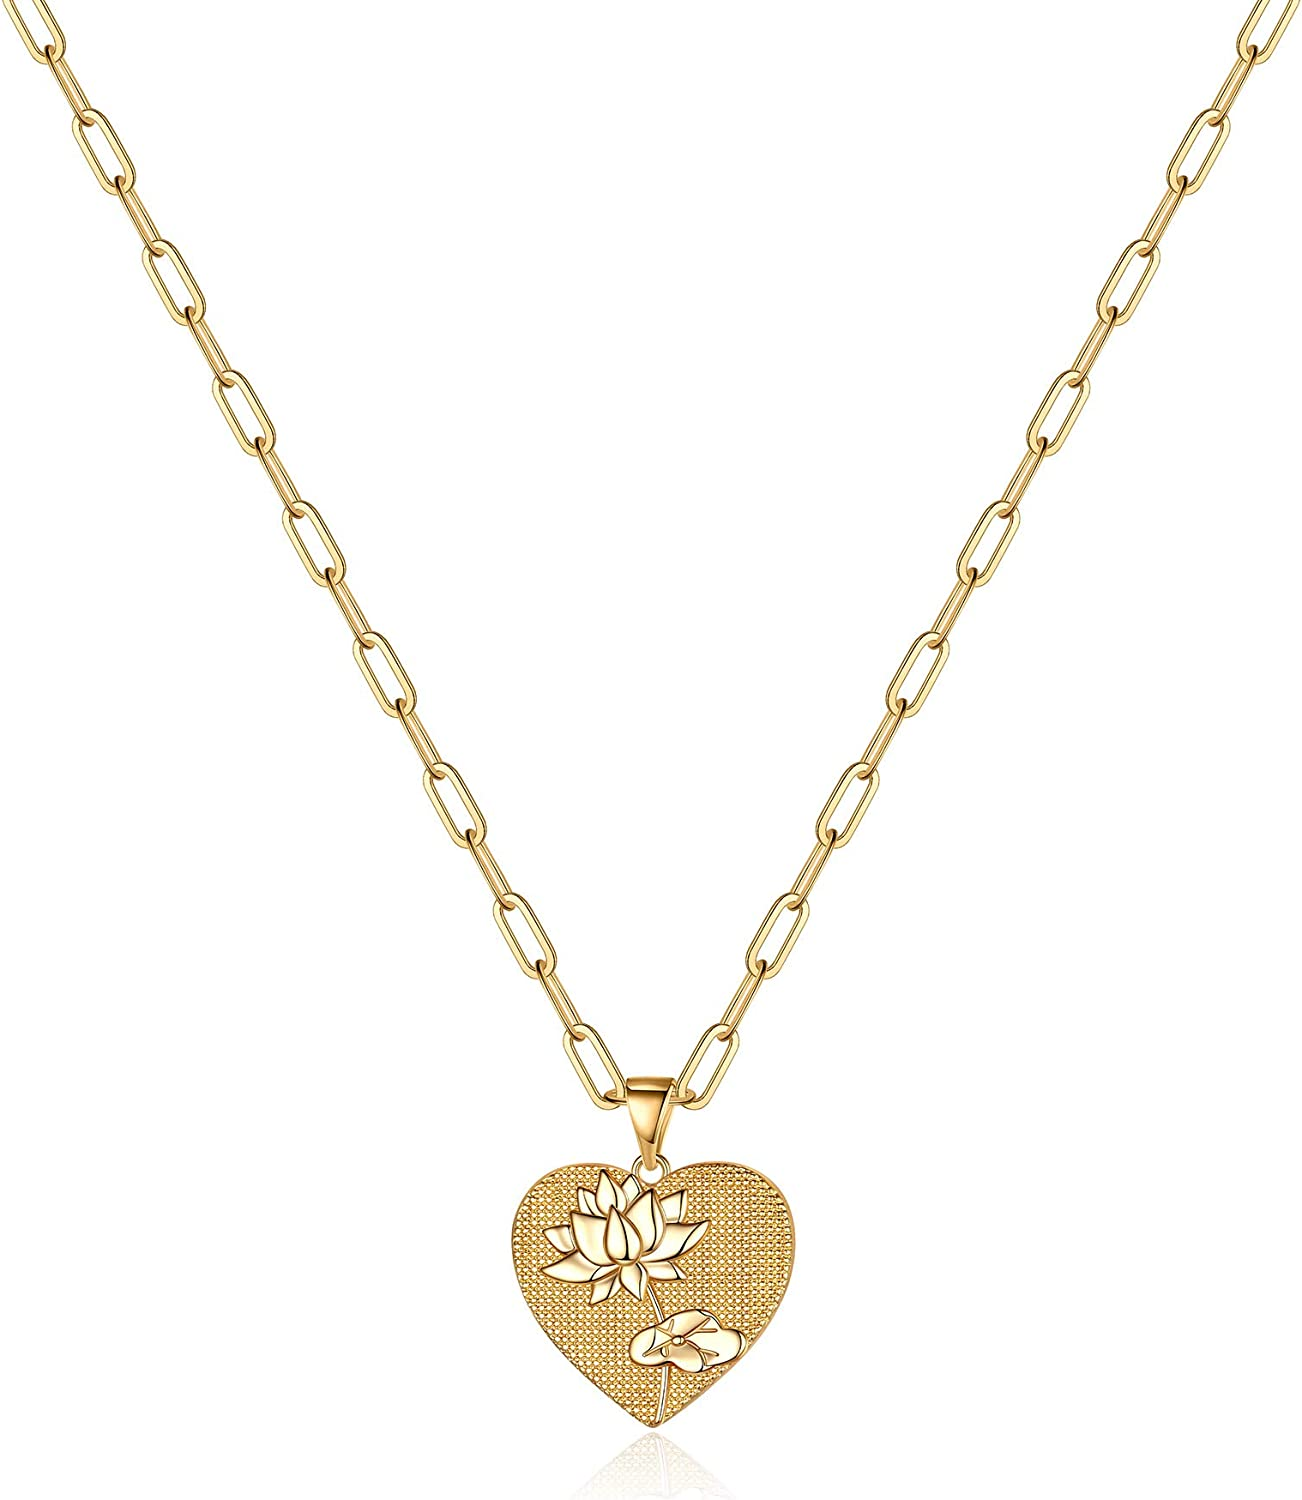 Hidepoo Birth Flower Necklaces for Gold Las Vegas Mall Super beauty product restock quality top Dainty Plated 14K Women